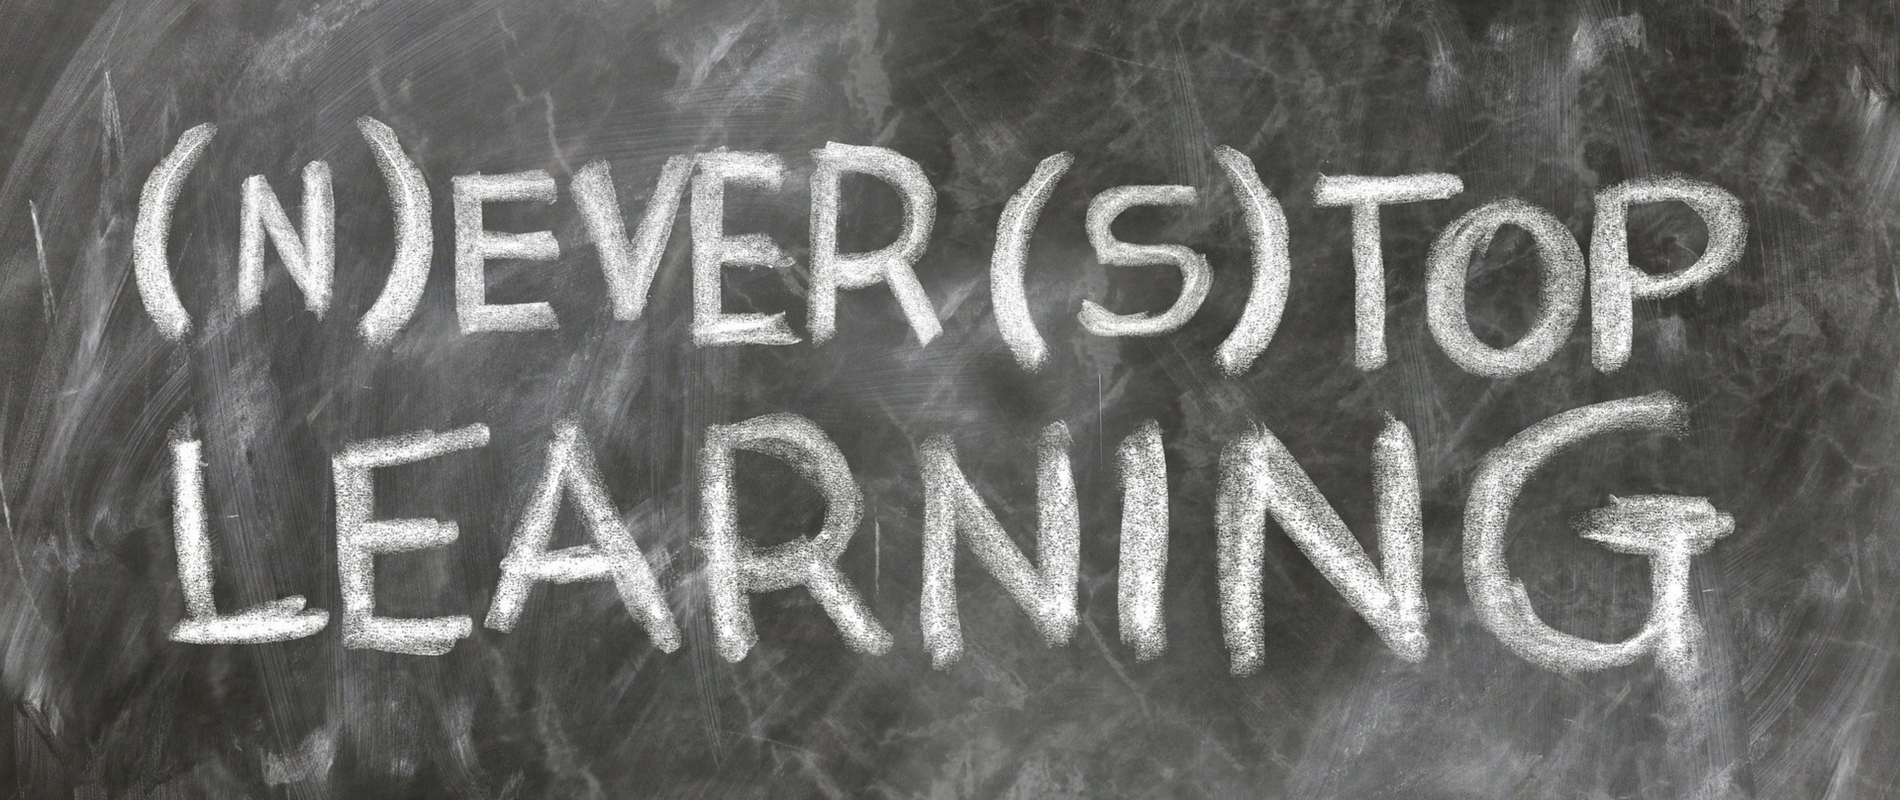 never_stop_learning/about_us